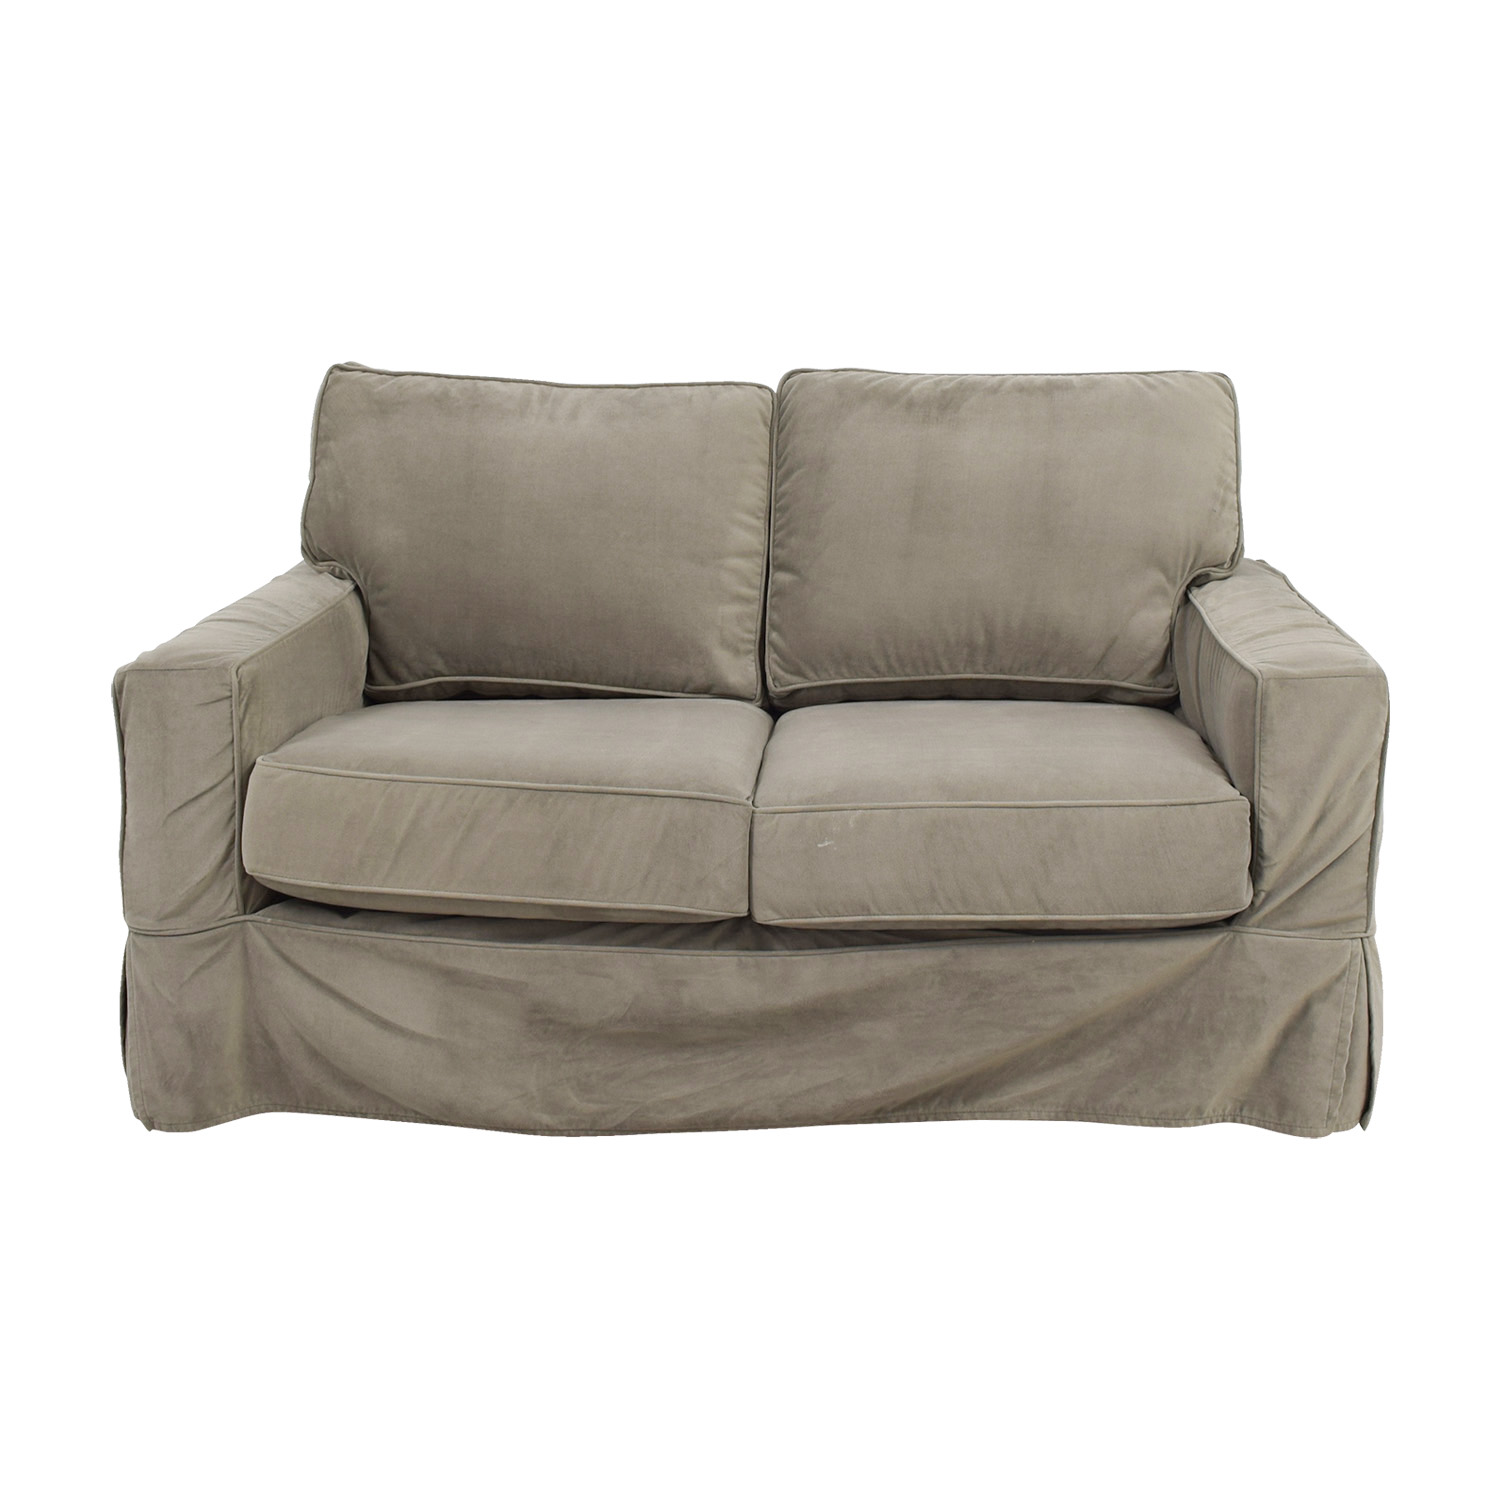 Pottery Barn Grey Comfort Square Arm Loveseat / Loveseats